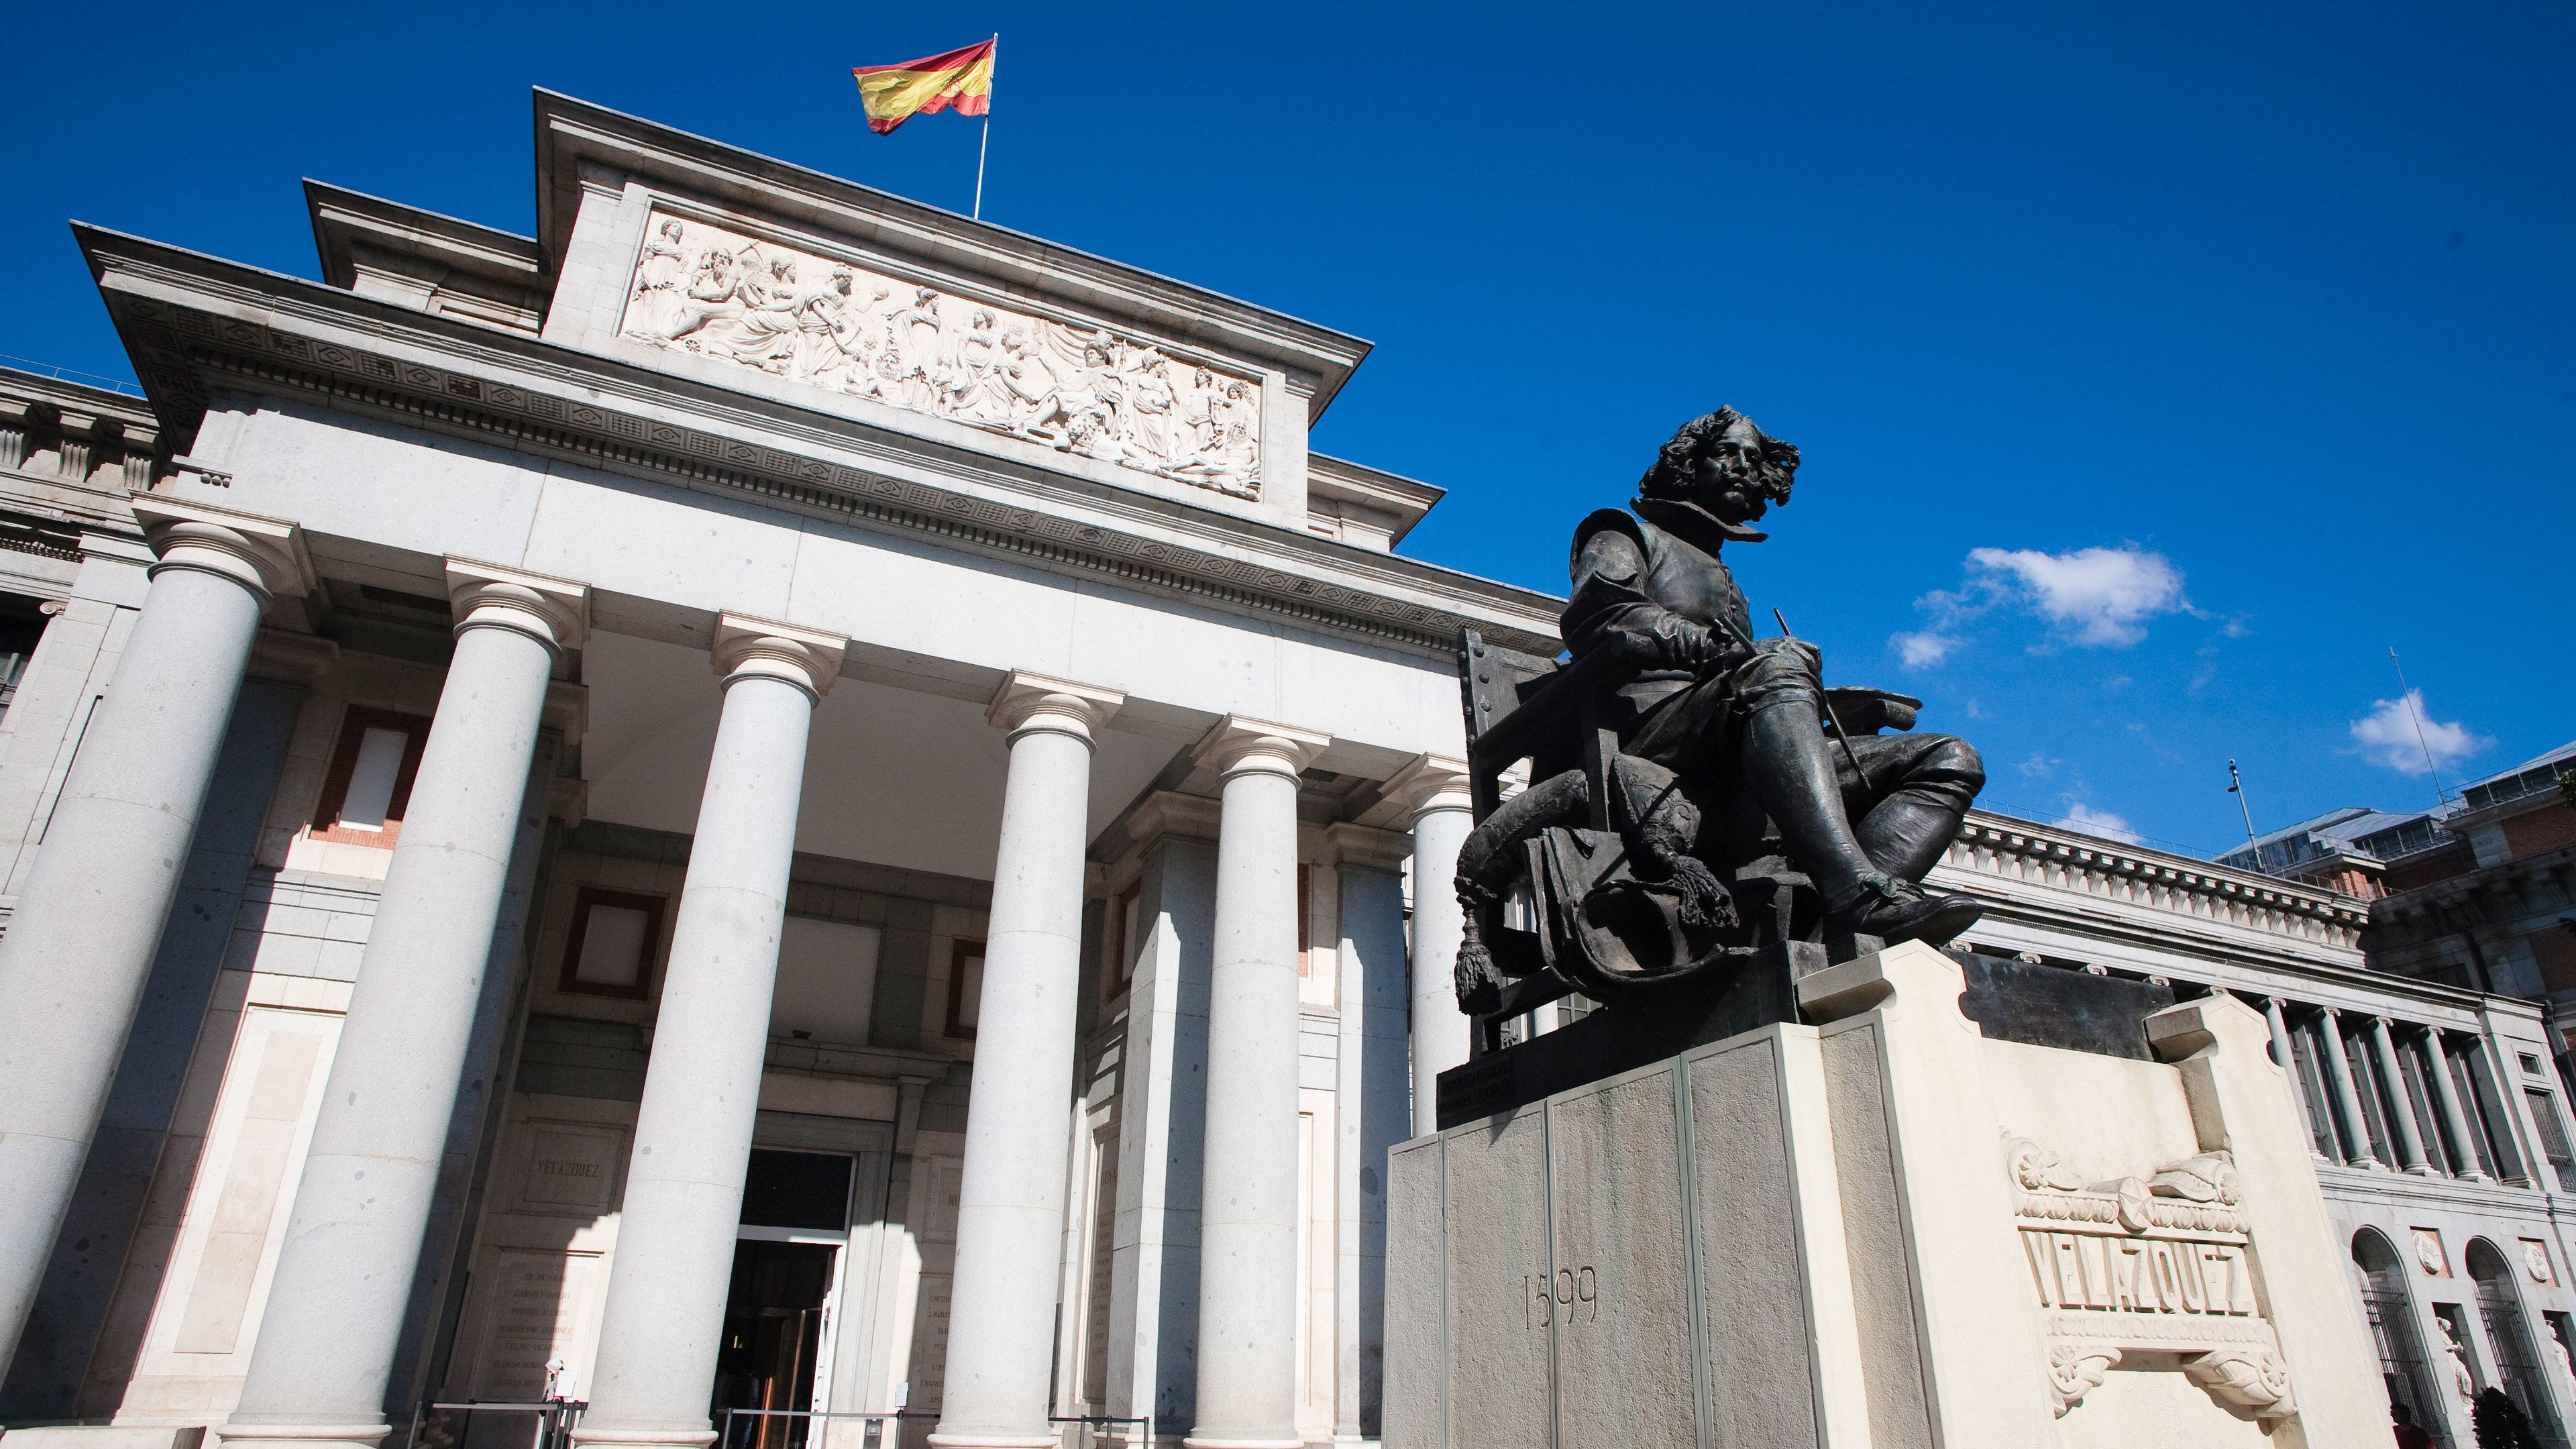 Skip-the-Line Access and Guided Visit to Prado Museum